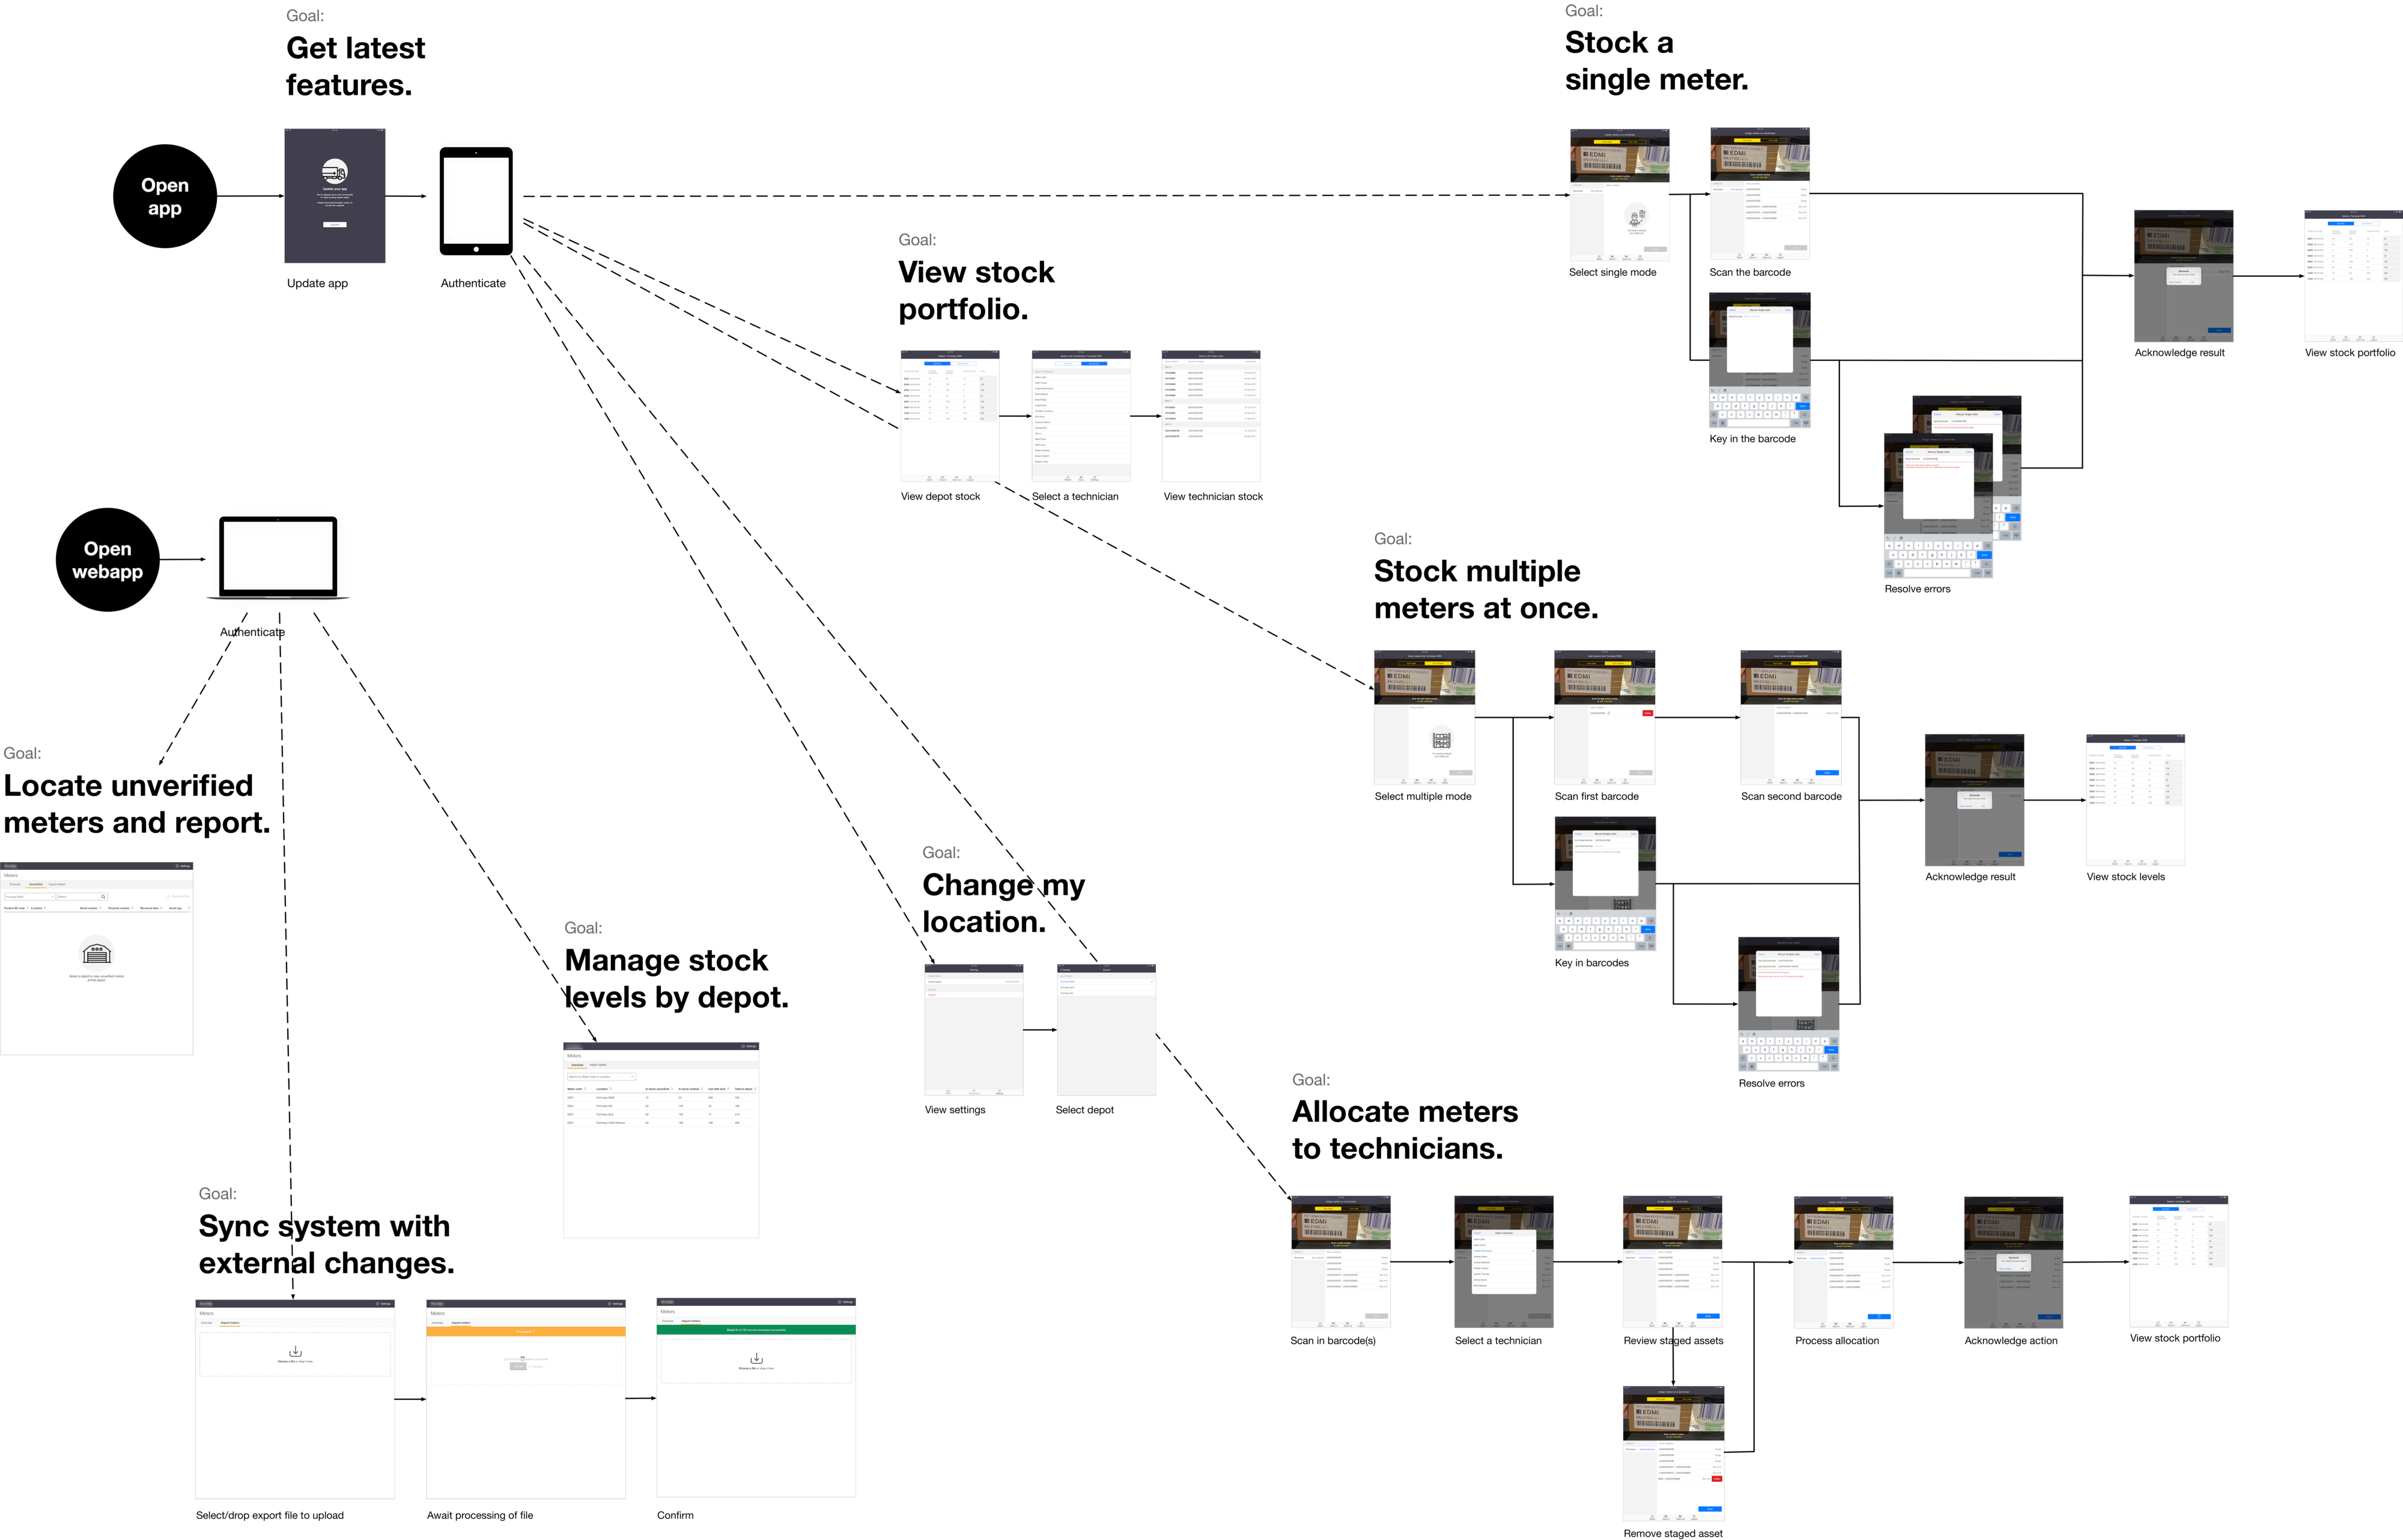 Diagram of screenshots annotated with labels to represent the flow and user goals